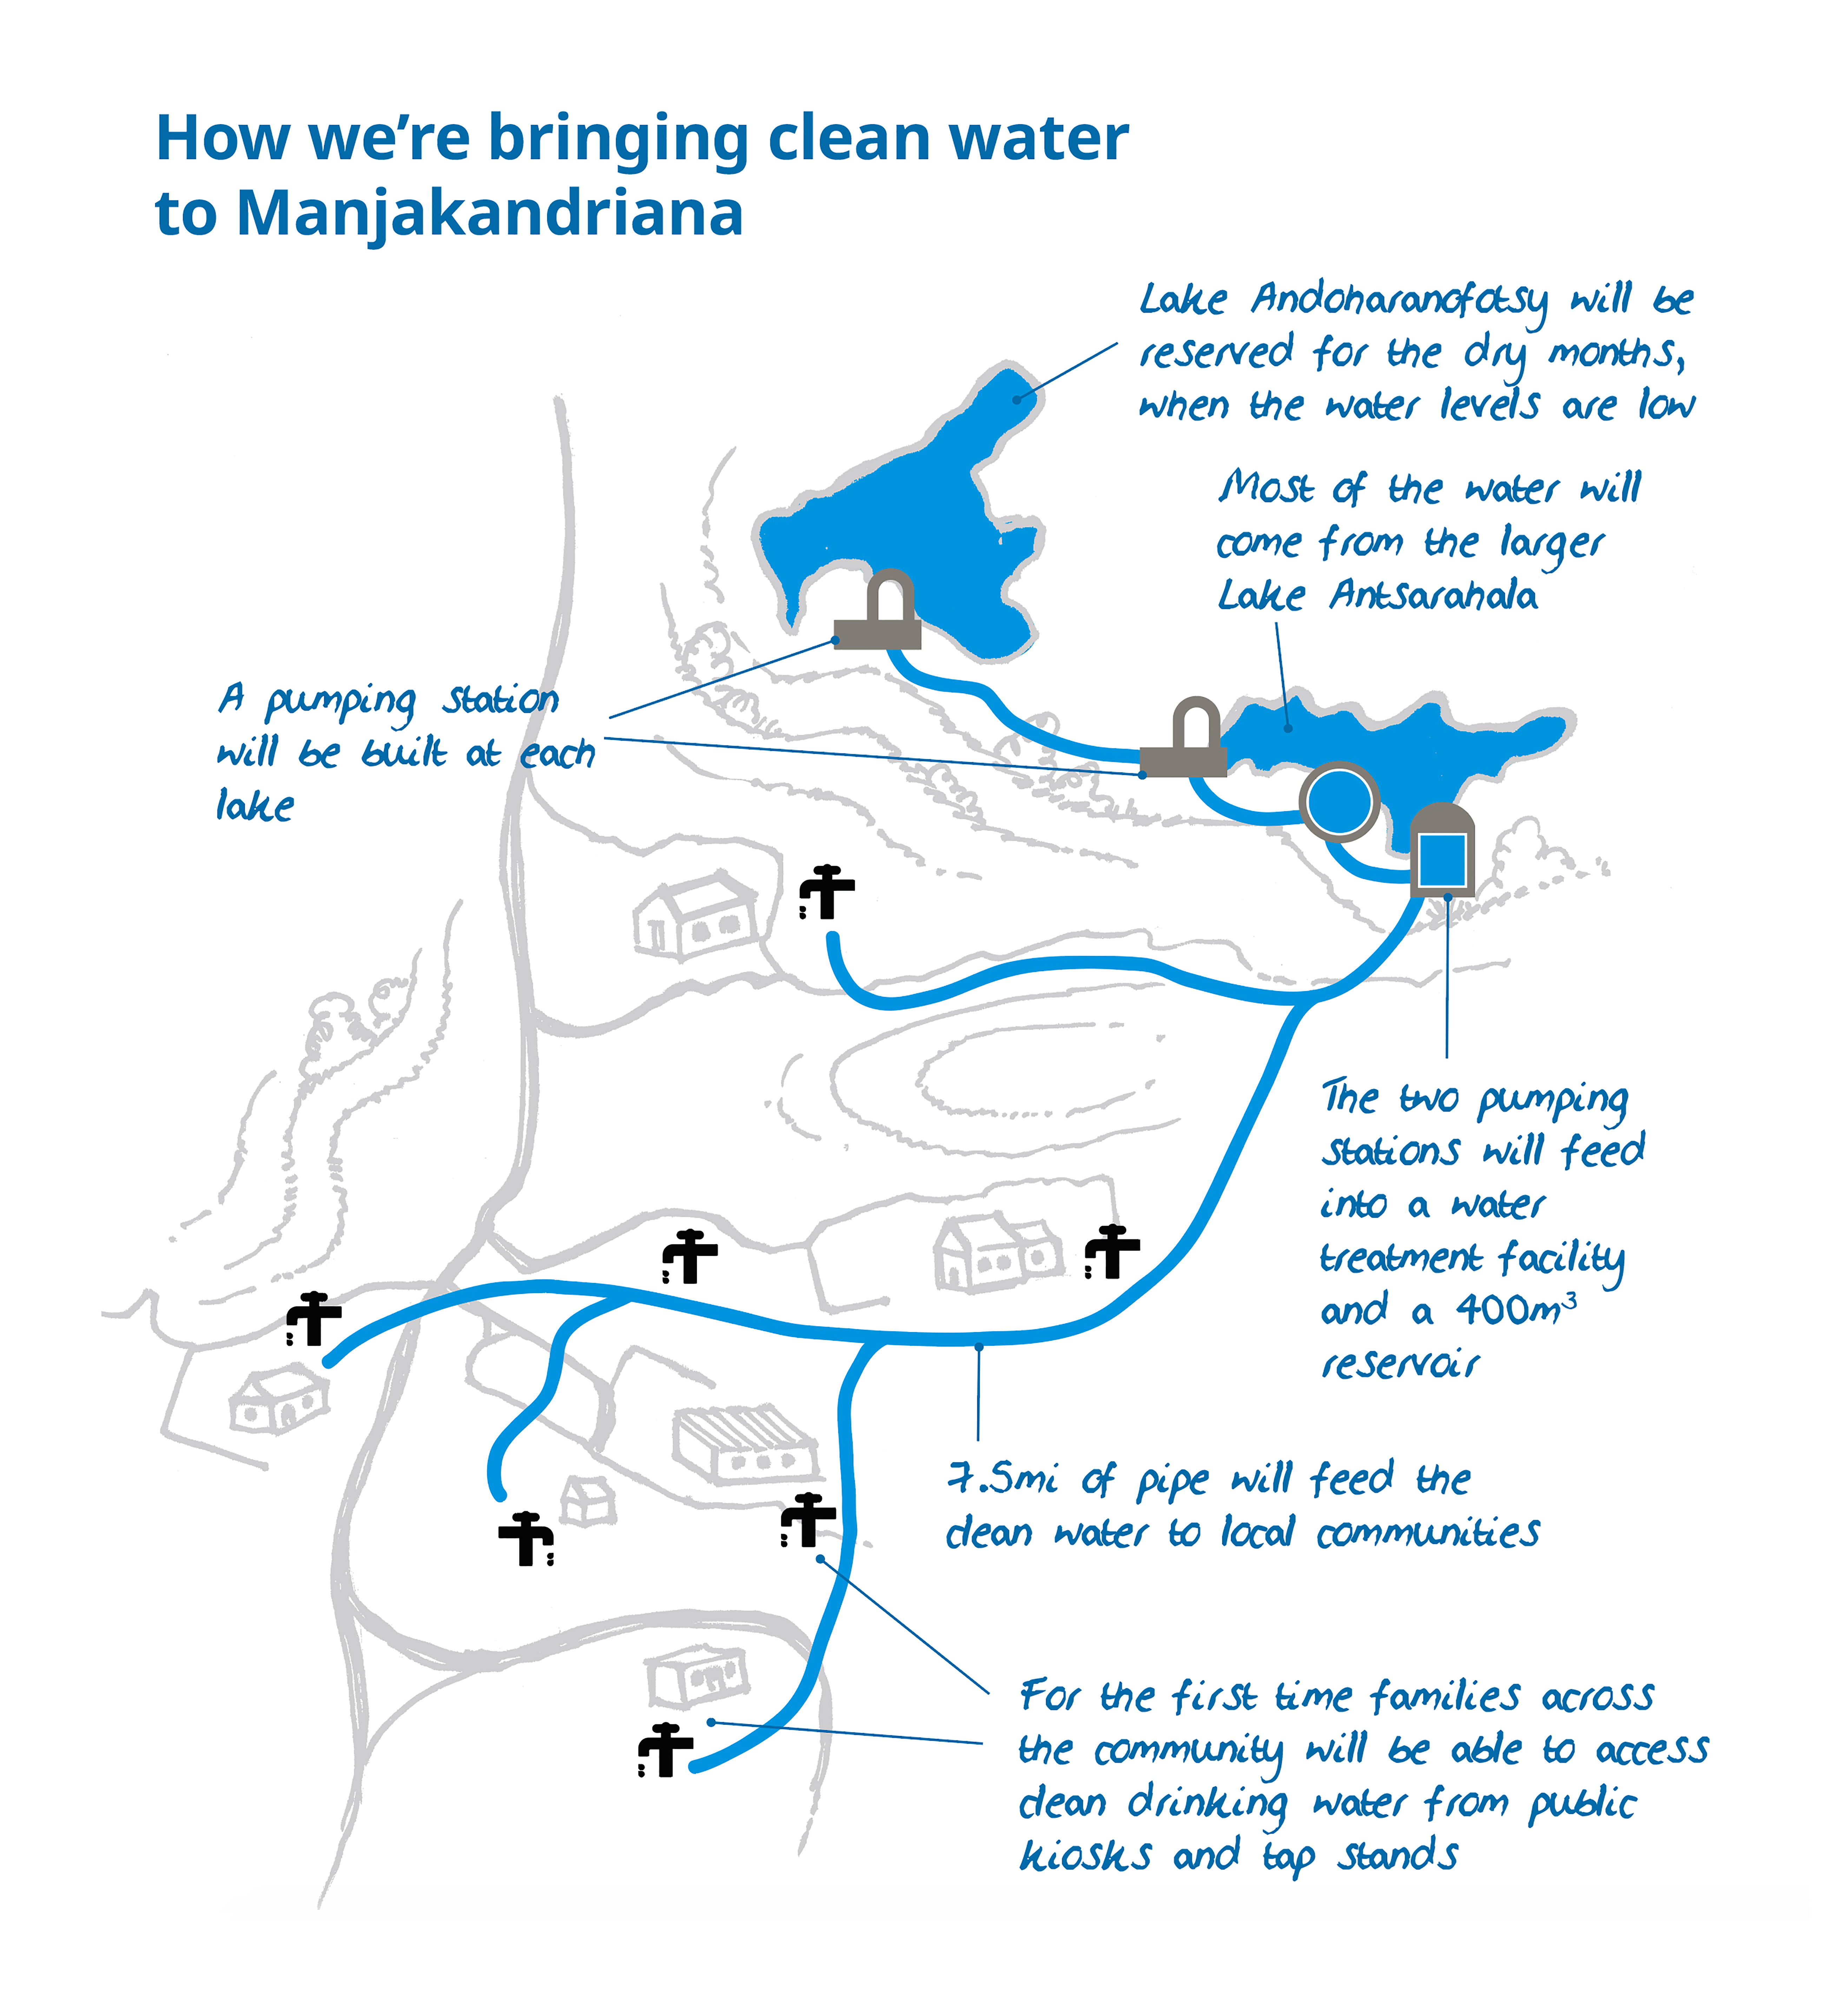 Map of the planned water system | WaterAid 2019